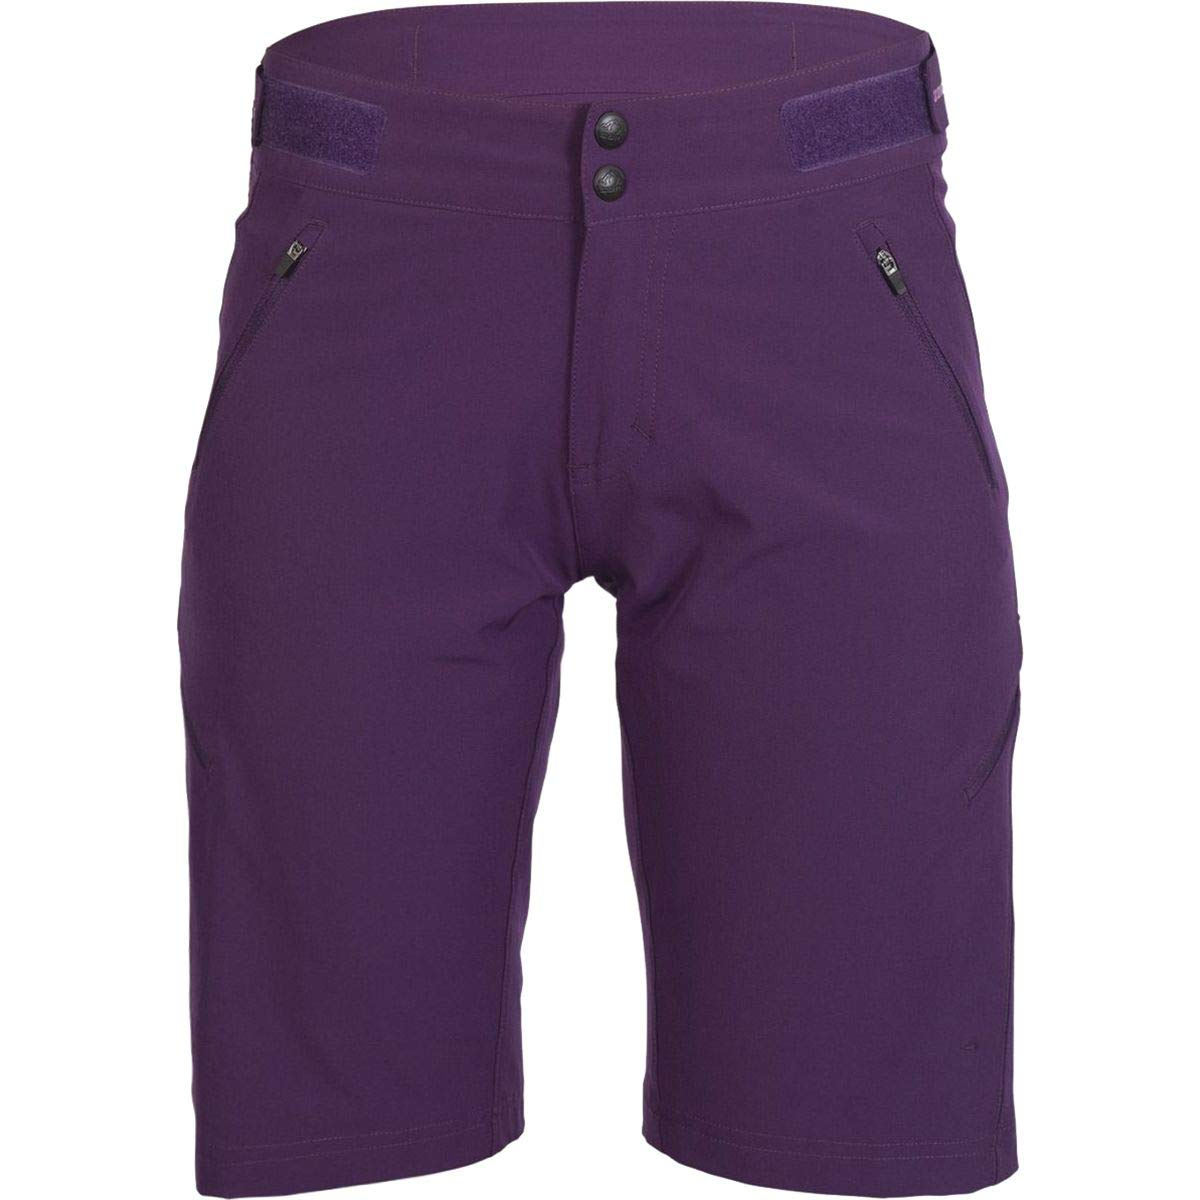 Zoic Navaeh Short - Women's Berry, S by Zoic (Image #1)